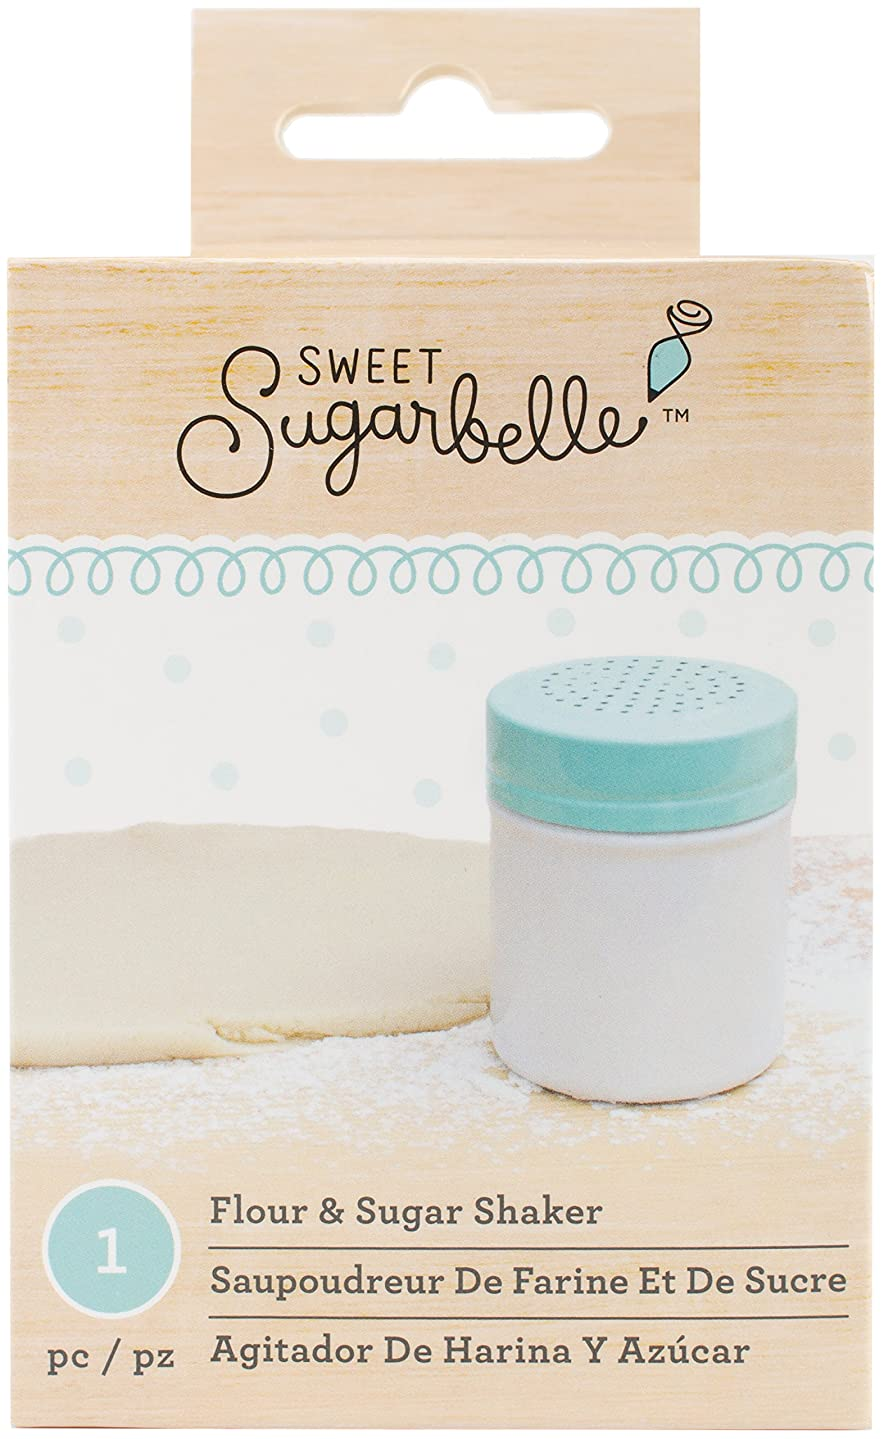 American Crafts Sweet Sugarbelle Decorating Tools Flour Shaker 8 Ounce, 8 oz